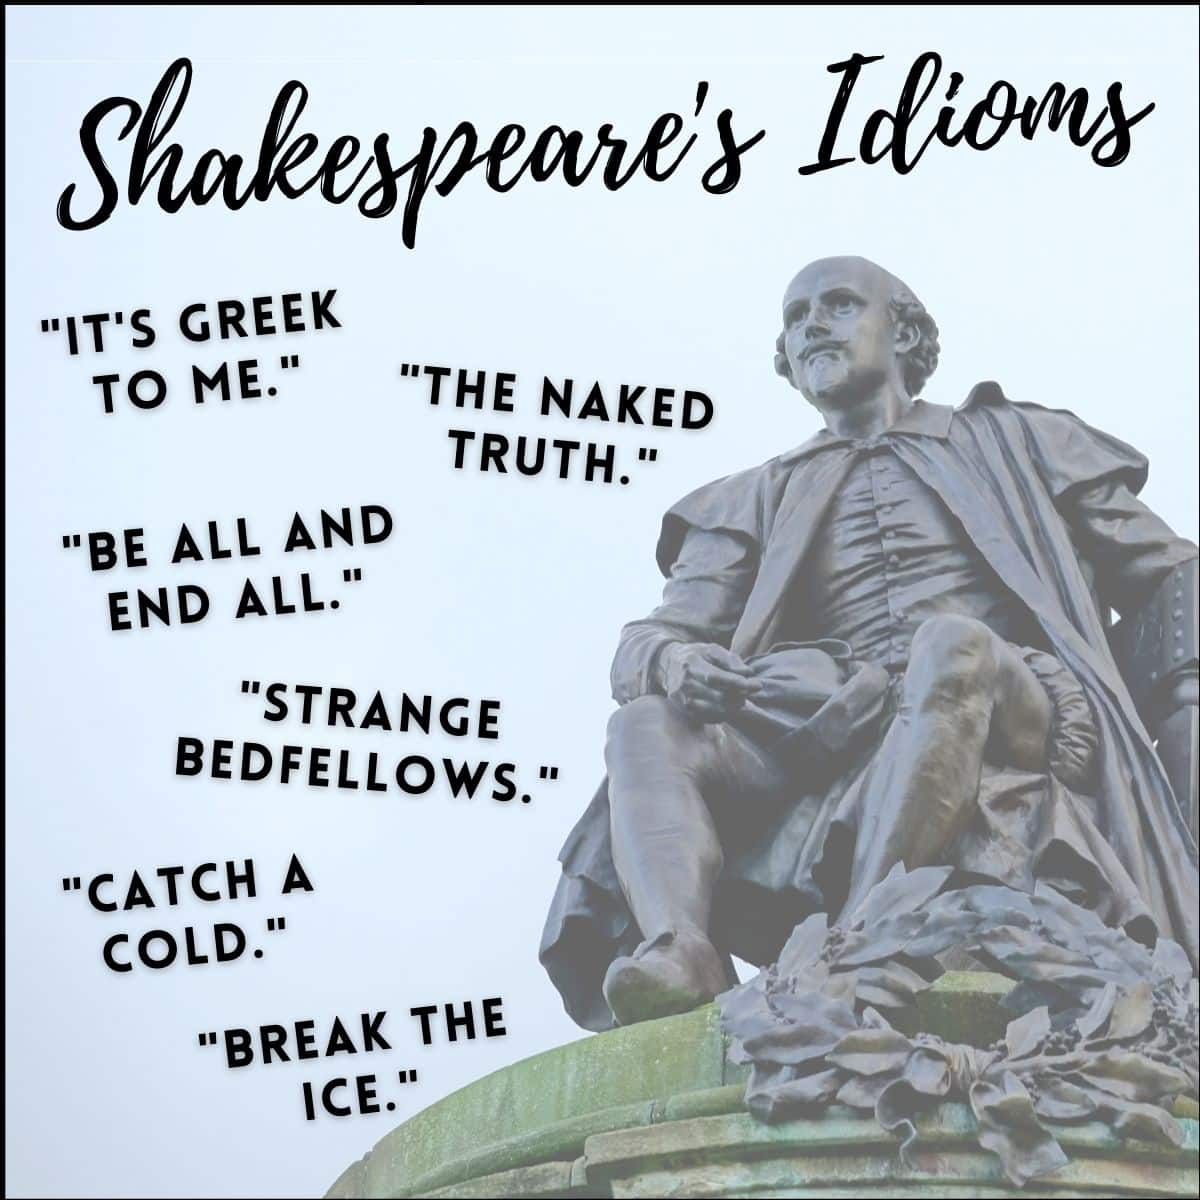 shakespeare's idioms include: it's greek to me, the naked truth, be all and end all, strange bedfellows, catch a cold, and break the ice